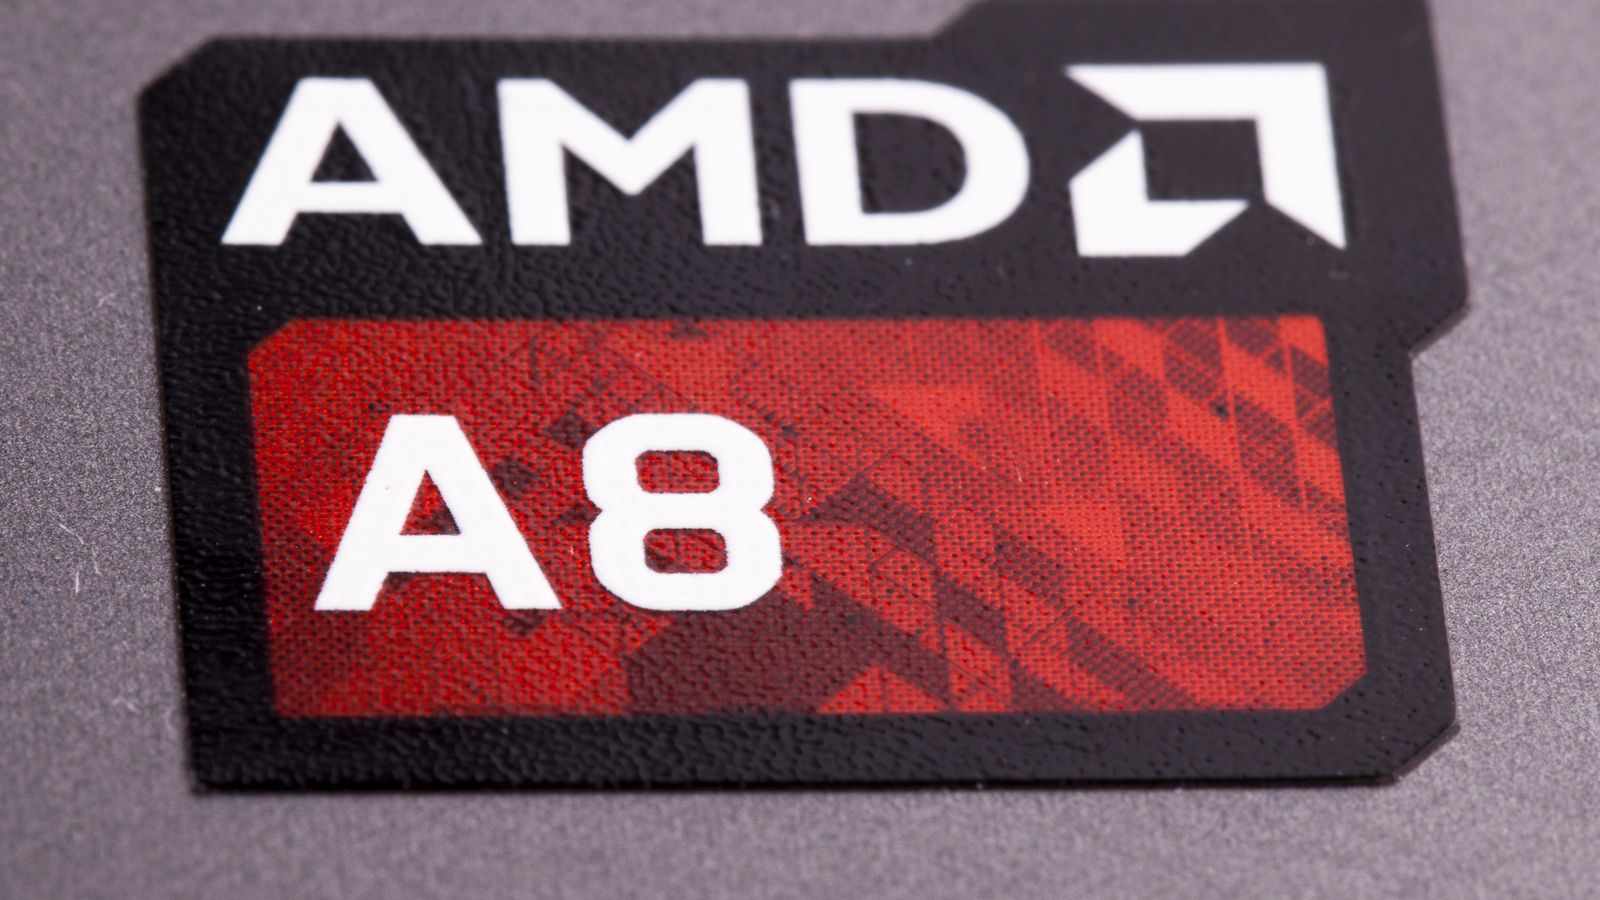 amd stock dont be foolish buy advanced micro devices today 1626967564 996874852